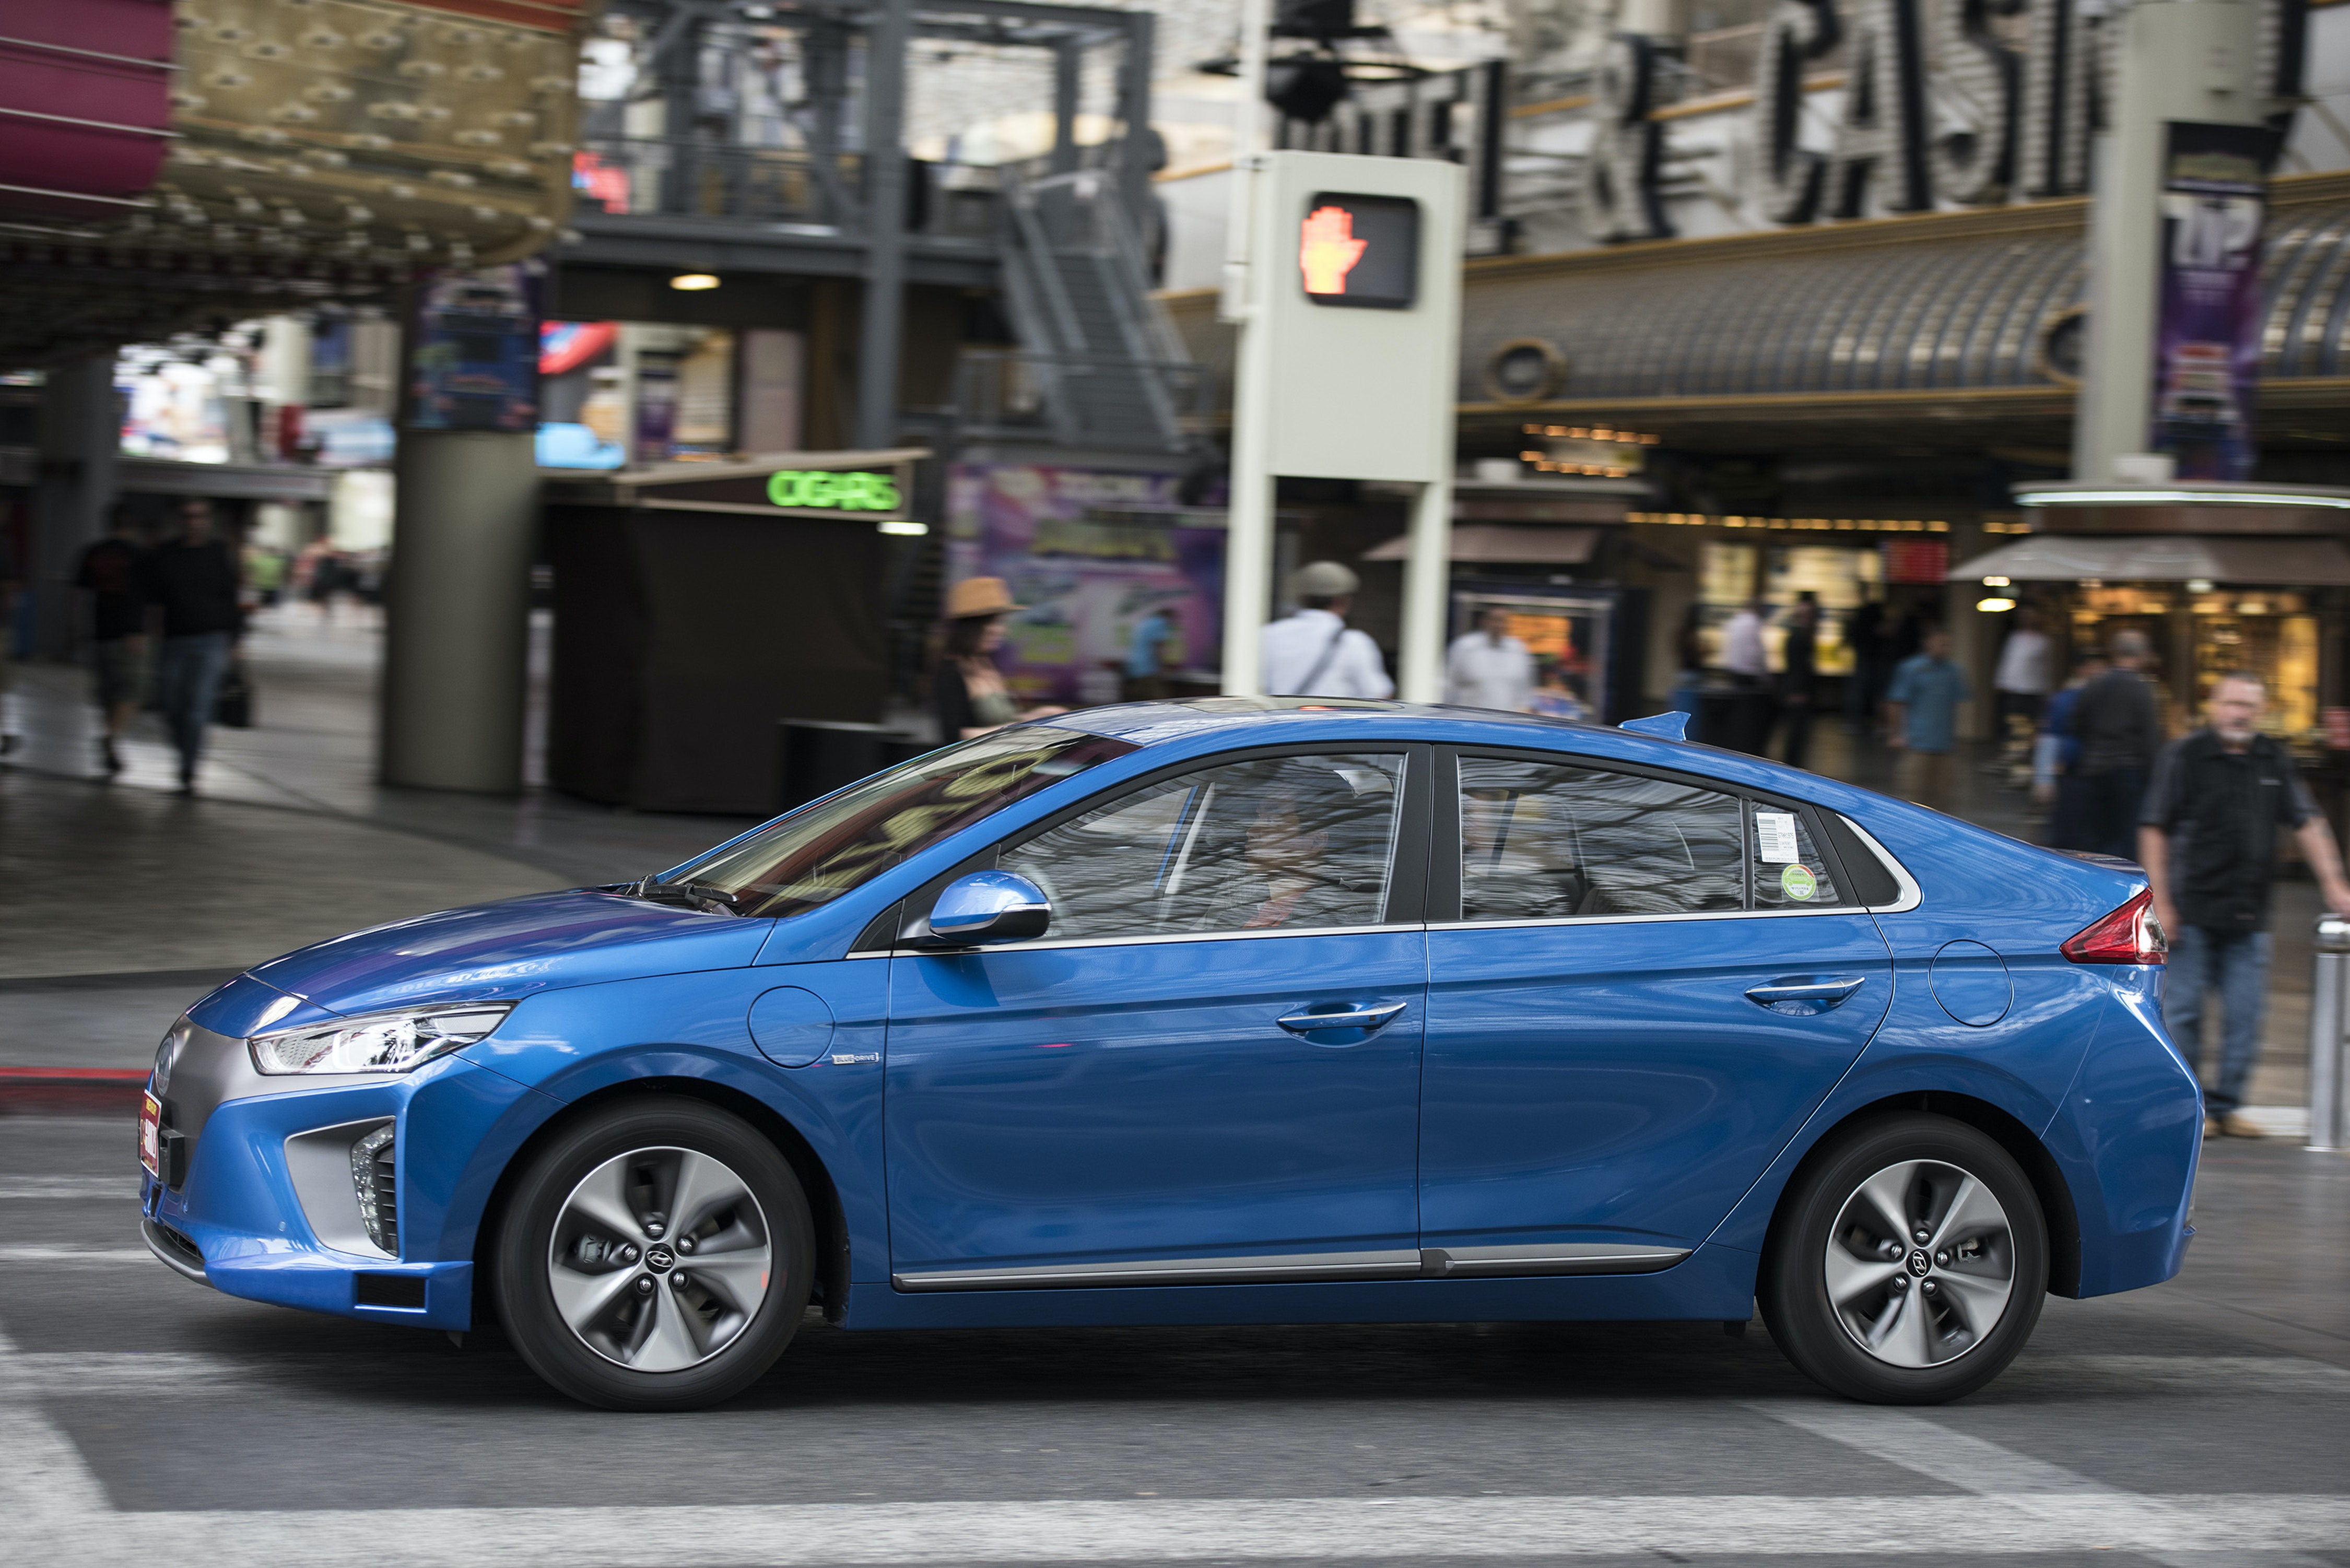 Hyundai wants to subscribe to its all-electric Ioniq.